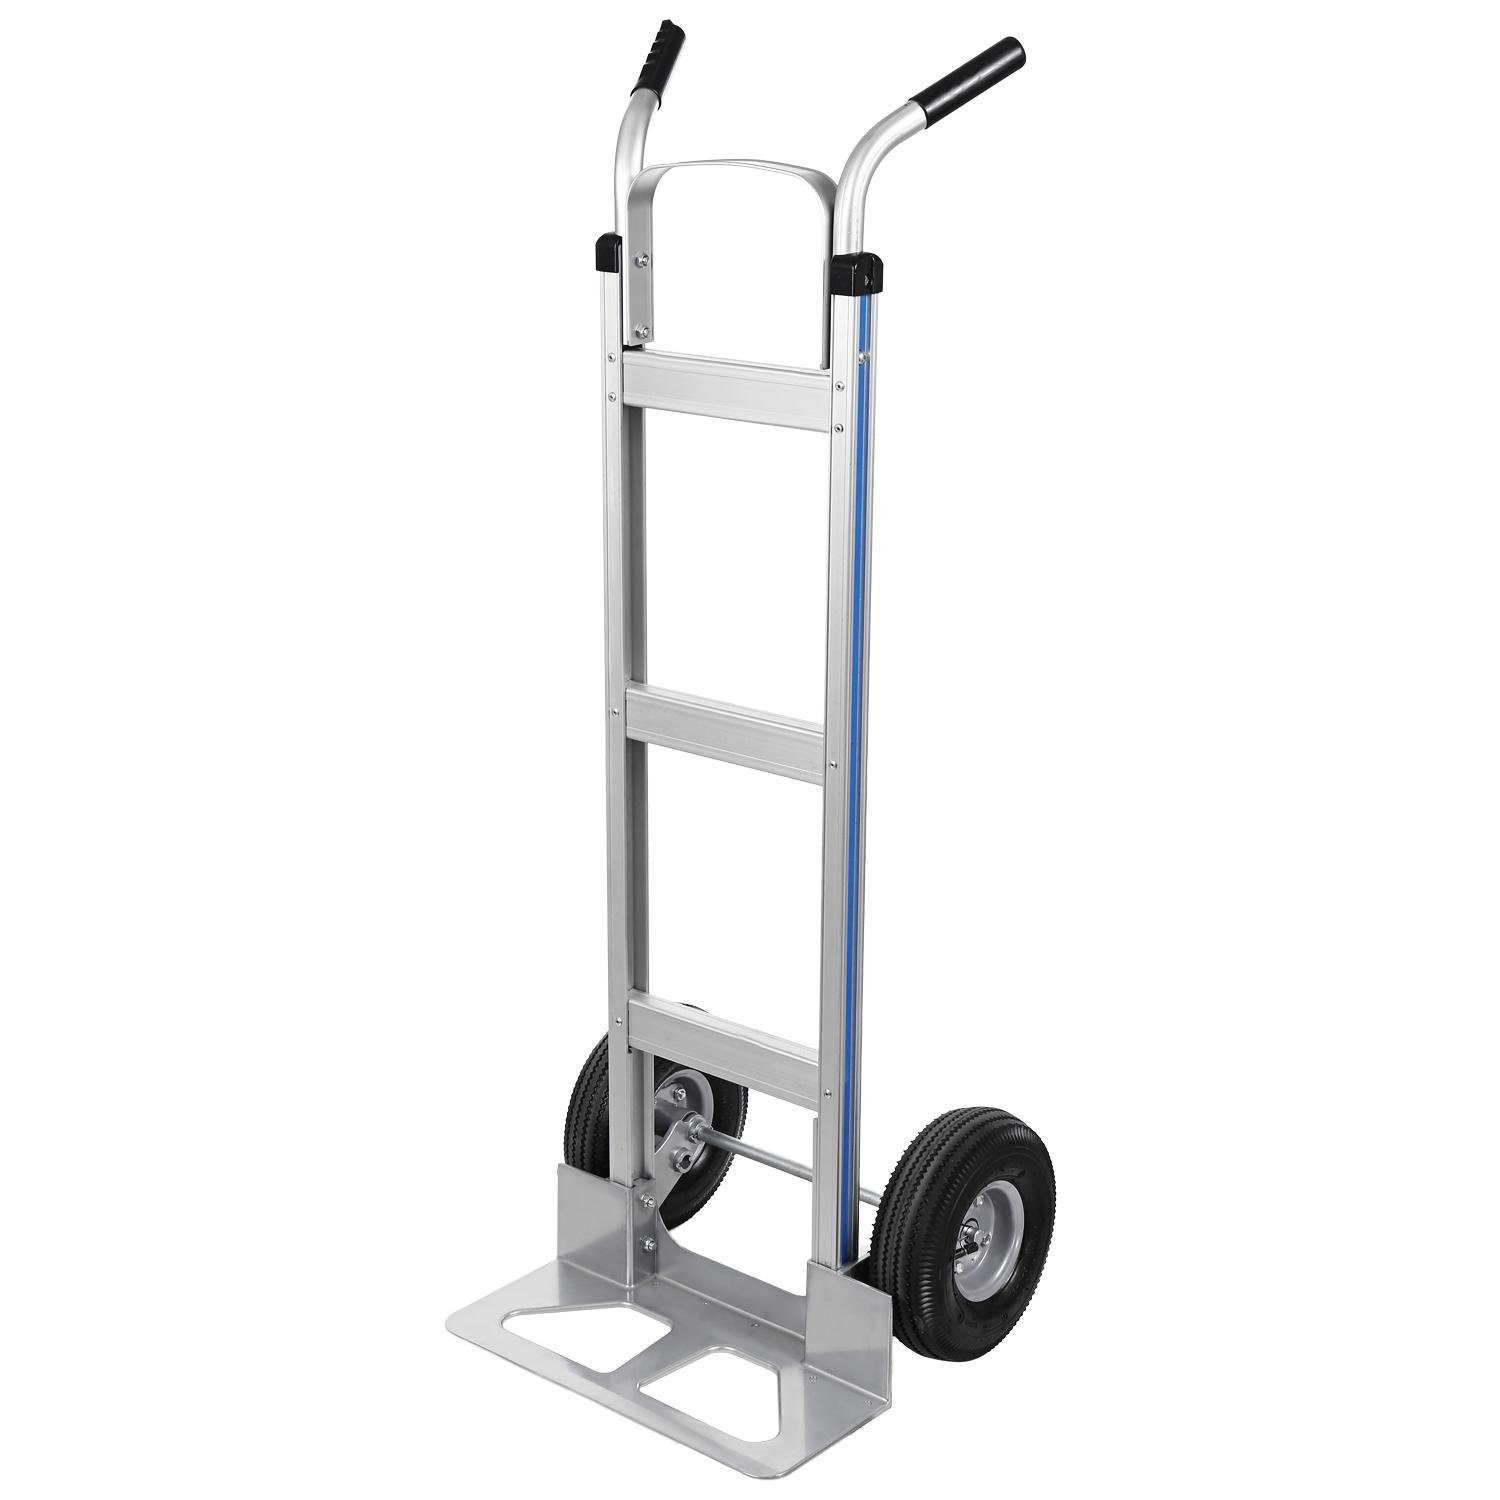 Ferty Aluminum Hand Trucks 500LBS With 2 Pneumatic Tires Dolly, Double Pistol Grip Handle Heavy Duty Trolley/Cart With 2 Wrench by Ferty (Image #1)